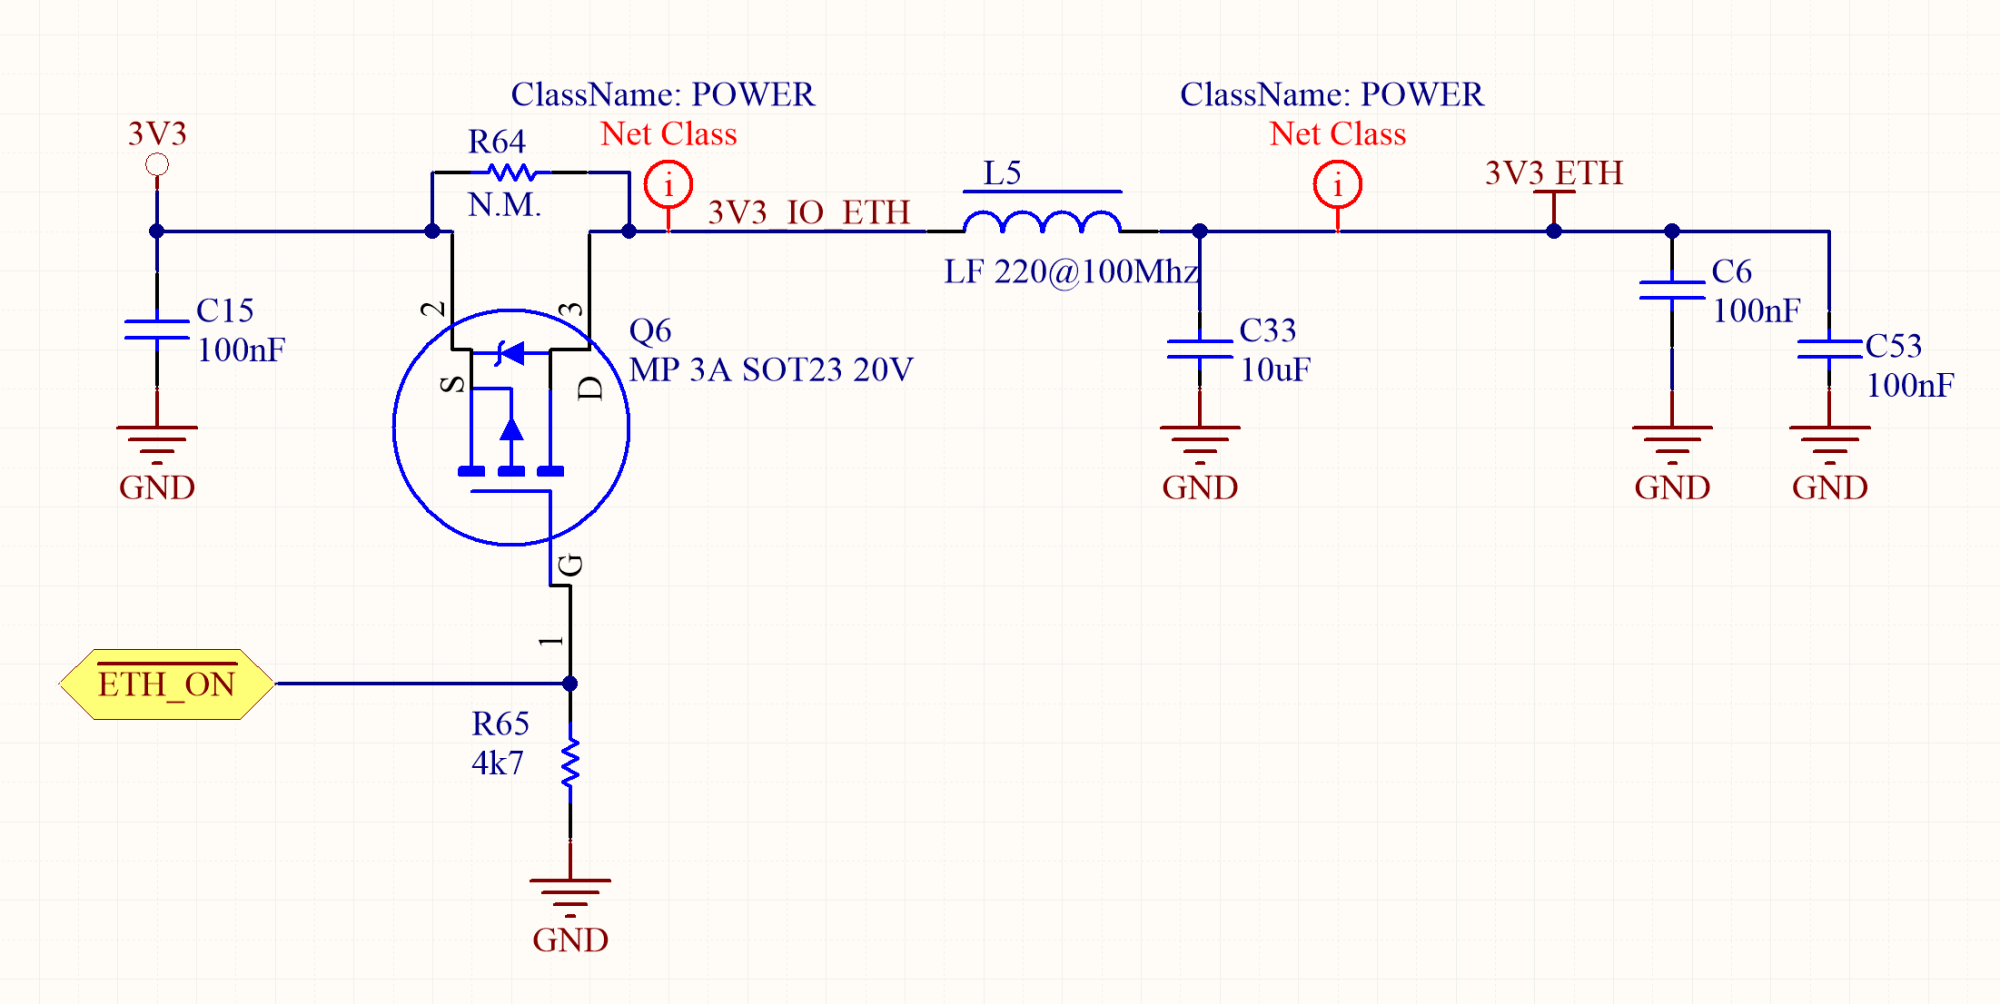 hight resolution of in order to save energy when the ethernet is not required their power can be software controlled in a separated power domain using a mosfet driven by a